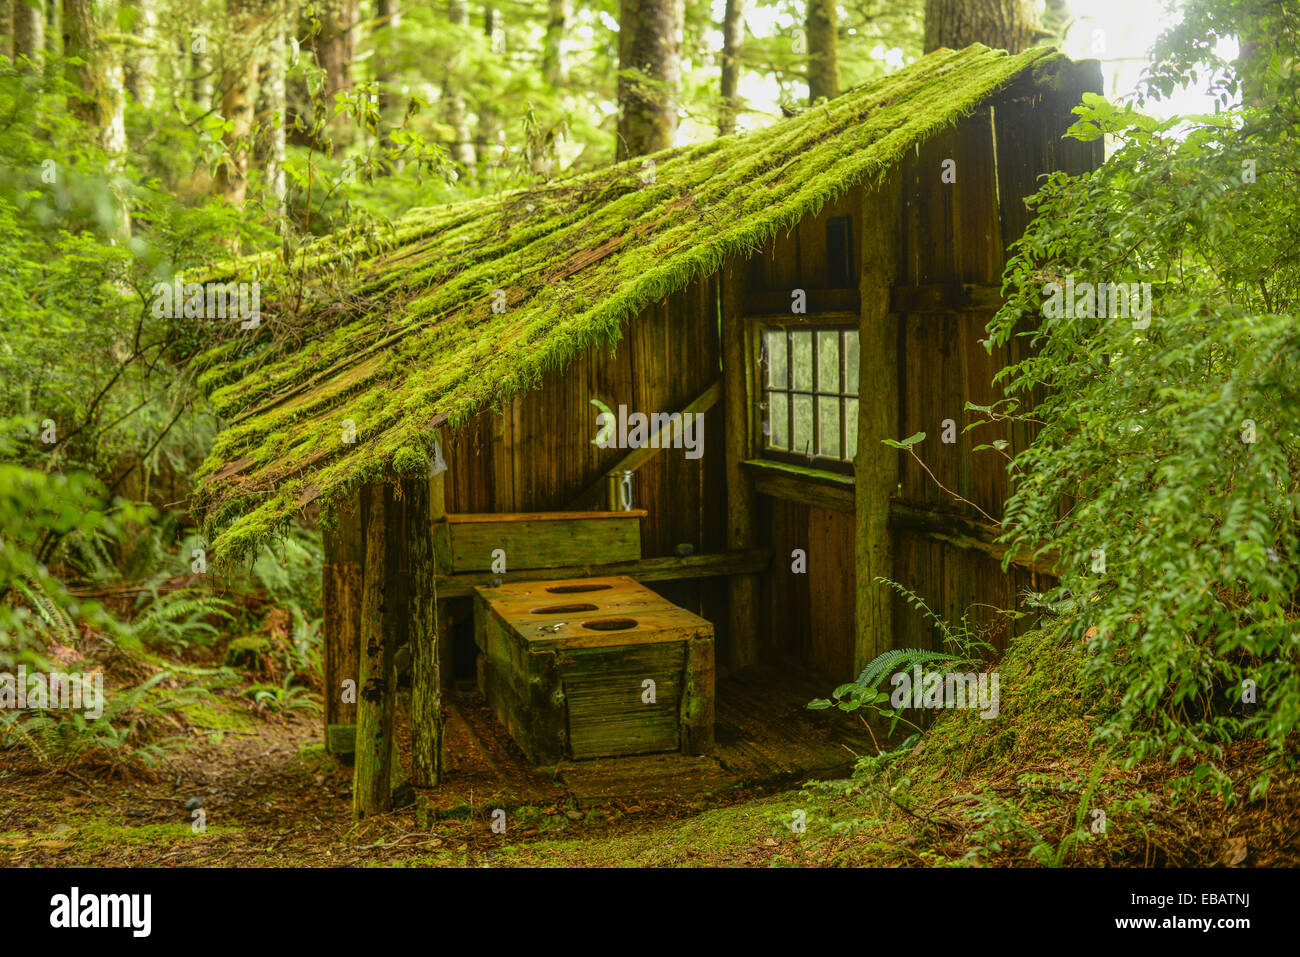 outdoor toilet hesquiat peninsula vancouver island bc canada stock image - Garden Sheds Vancouver Island